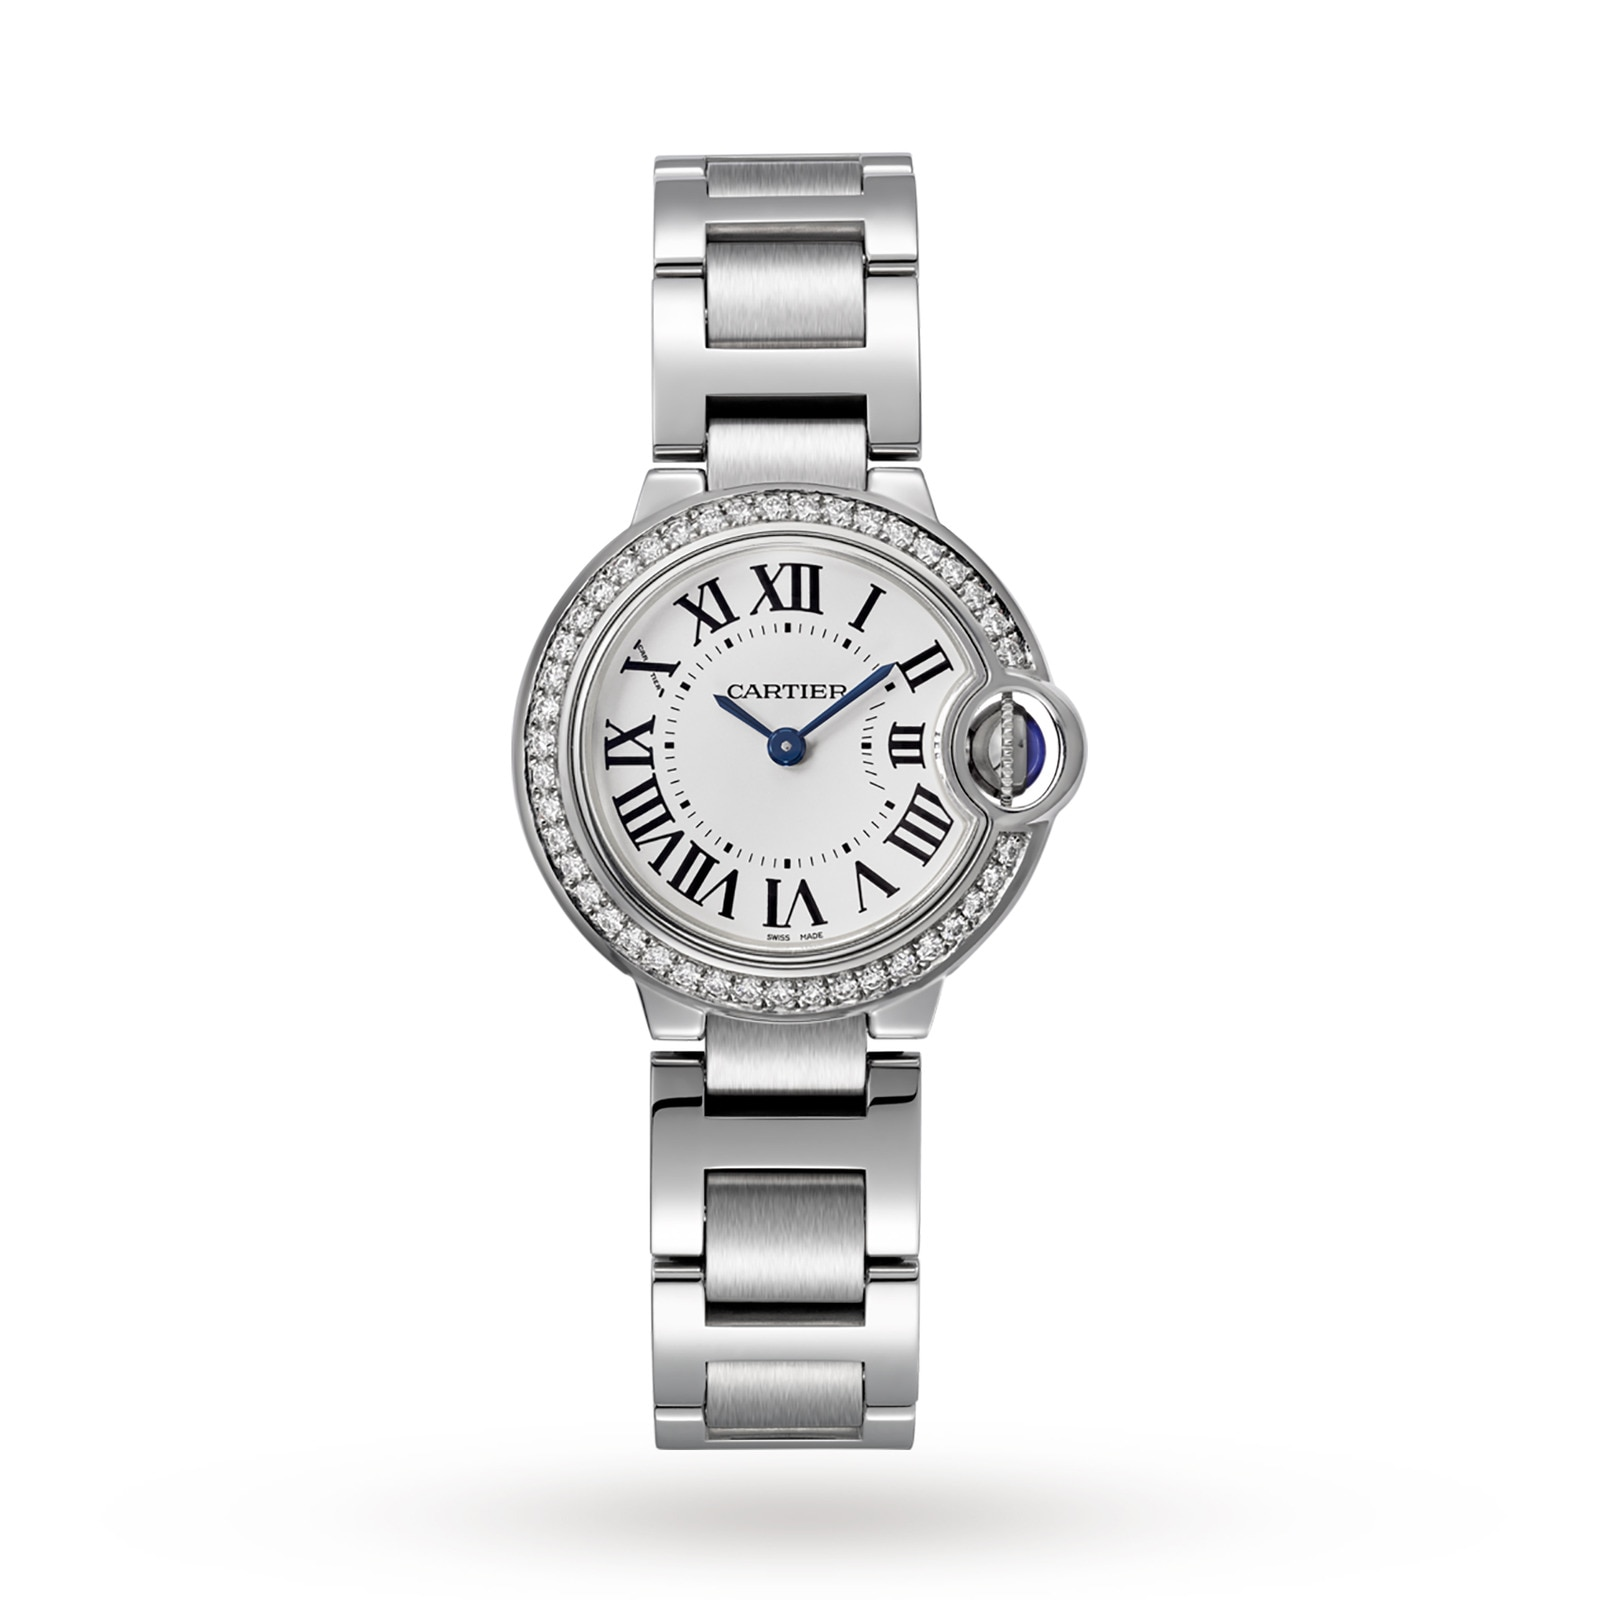 Cartier Ballon Bleu de Cartier watch, 28 mm, steel, diamonds